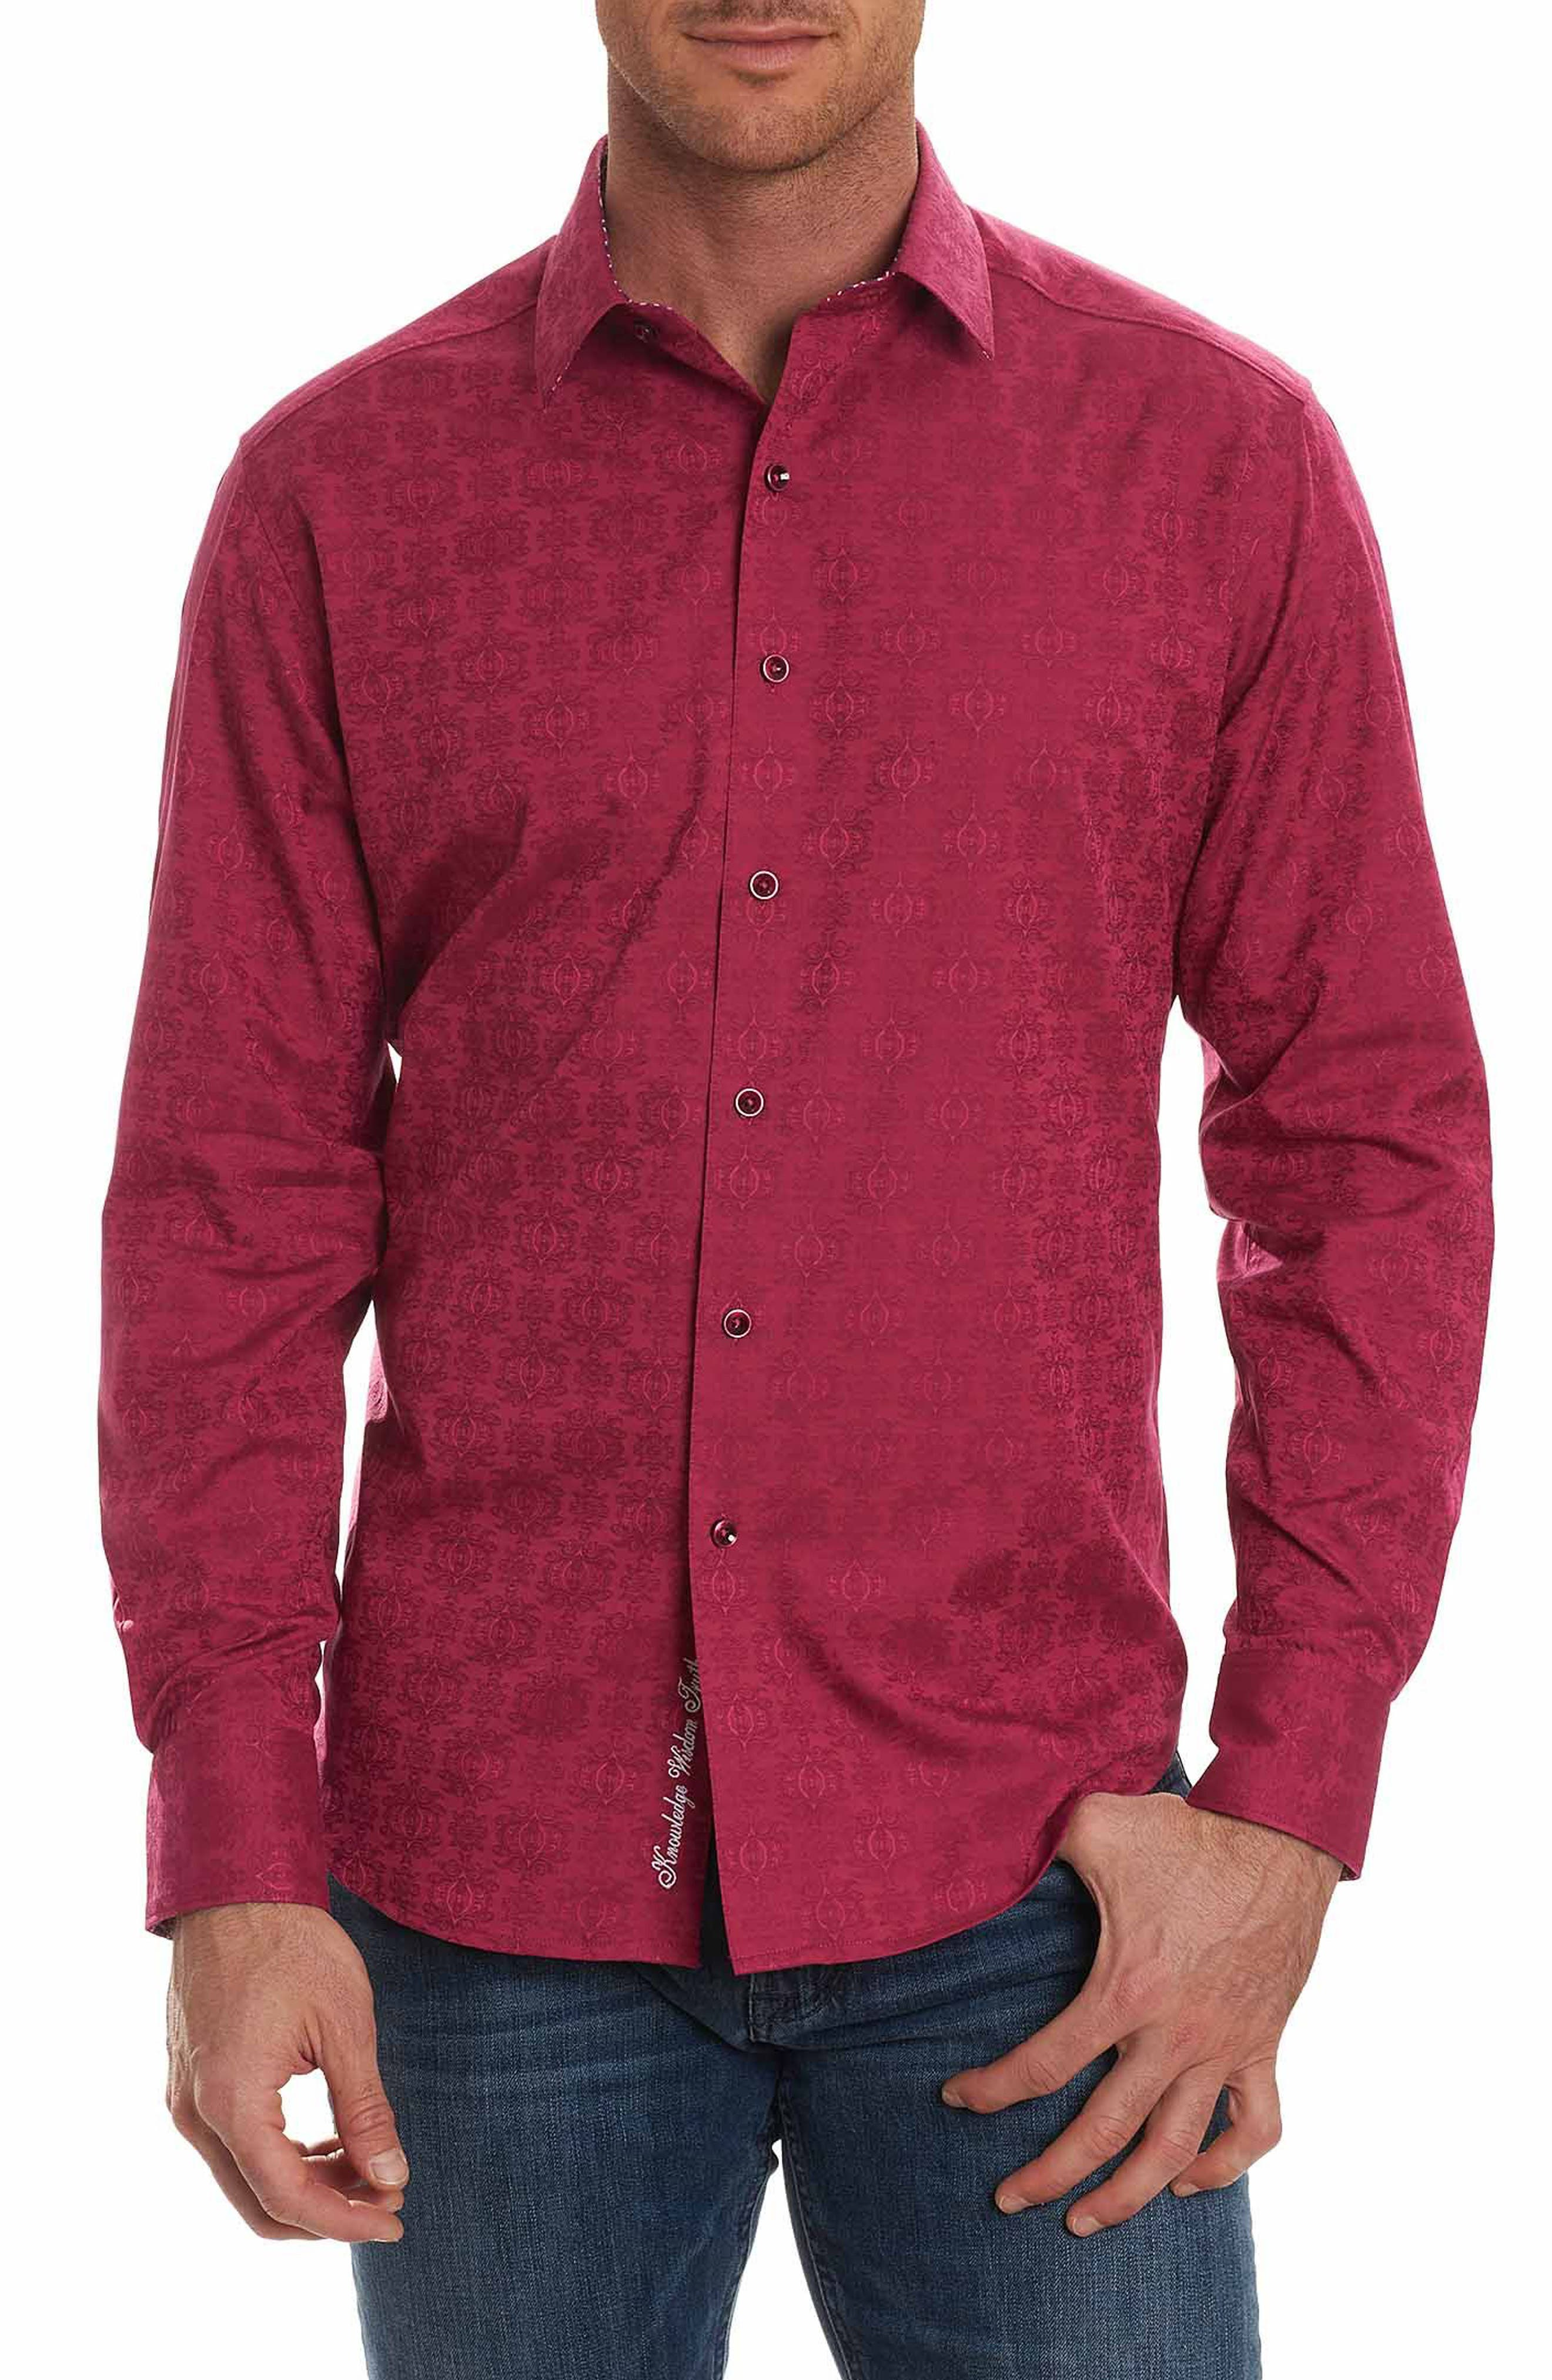 Robert Graham Cullen Classic Fit Jacquard Sport Shirt (Tall)